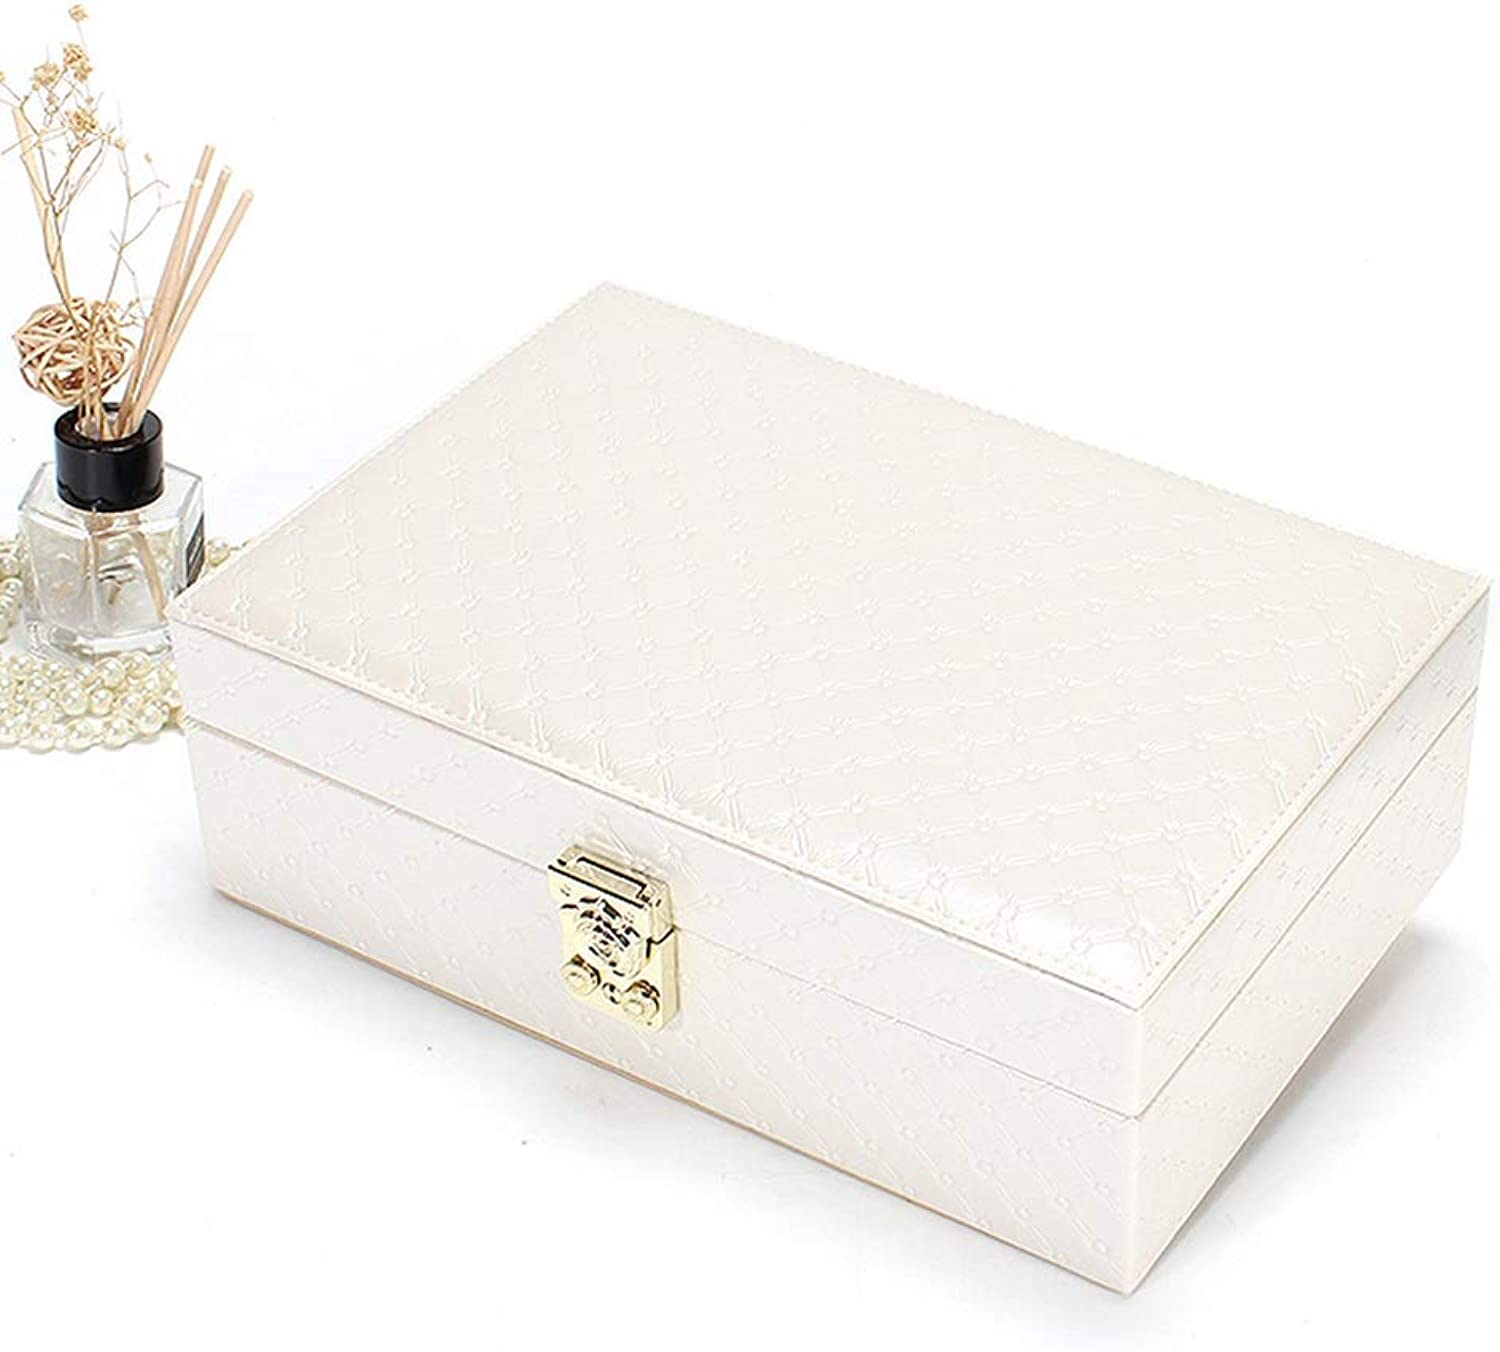 SHIRLEY Jewellery Box, Leather Rectangular Jewellery Boxes for Women and Girls, The Best Gift to Grandma, Mom, Girlfriend Or Daughter (color   White)